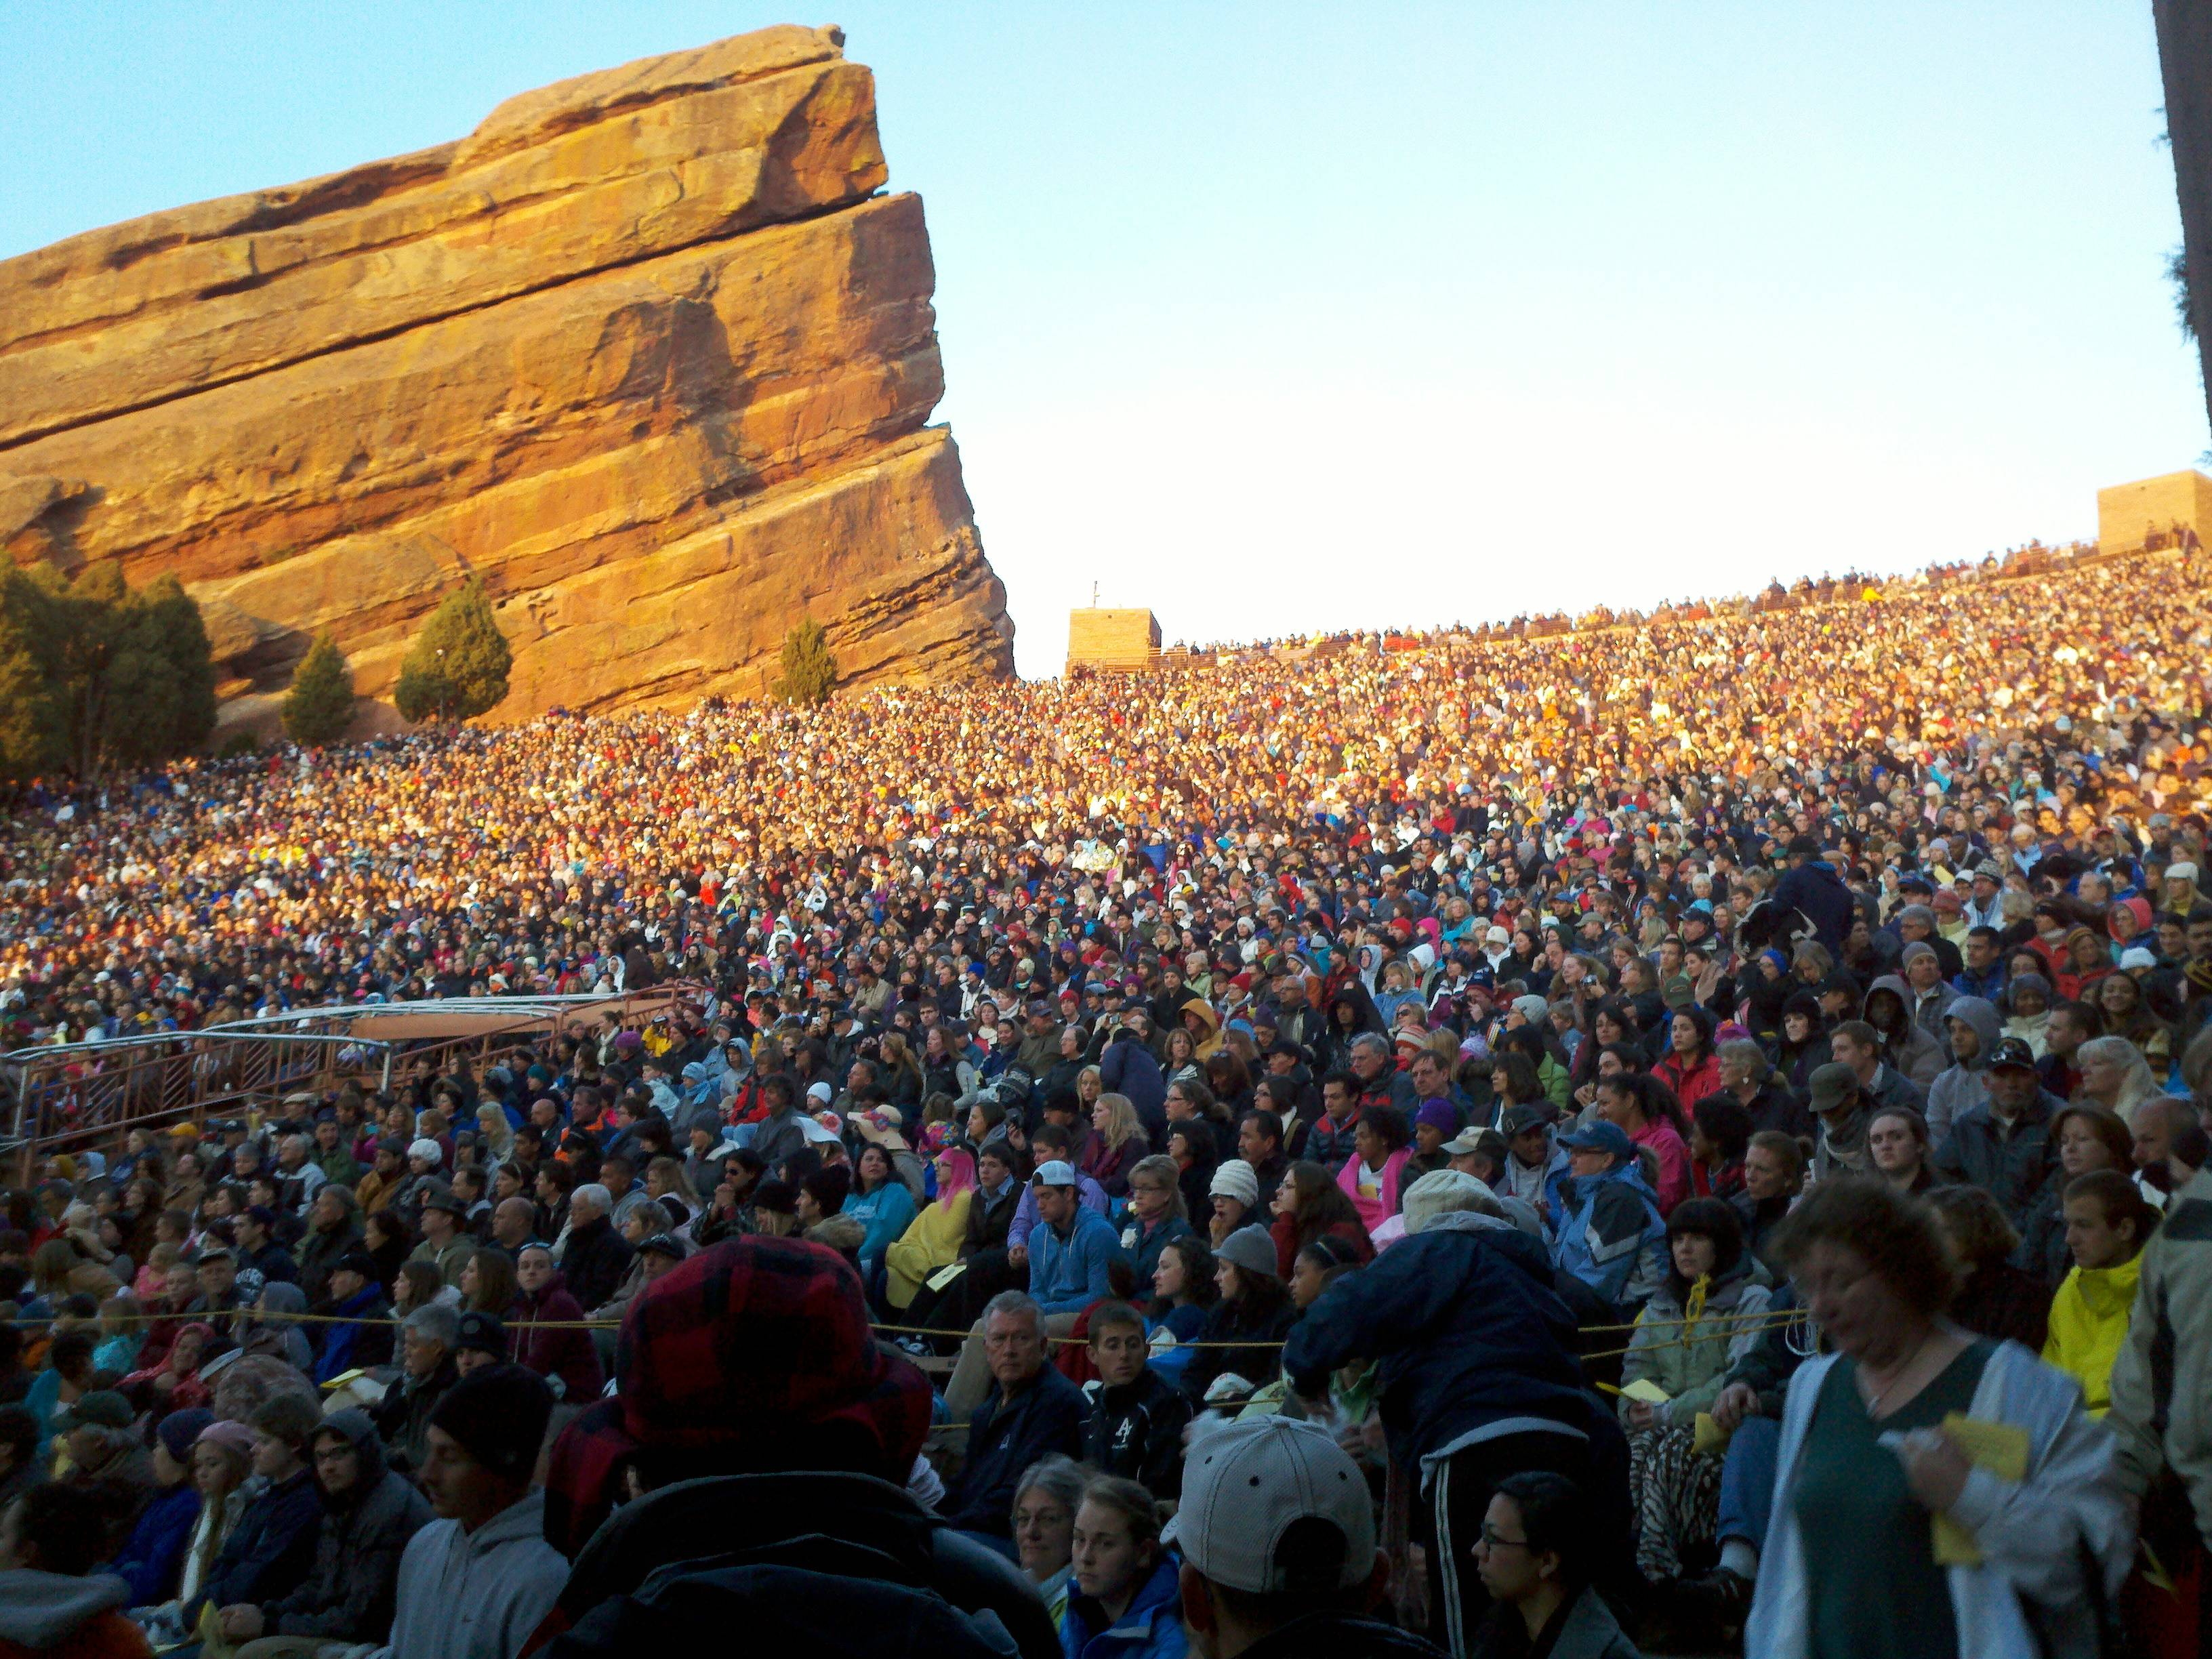 1000's attend annual Red Rocks Easter sunrise services...